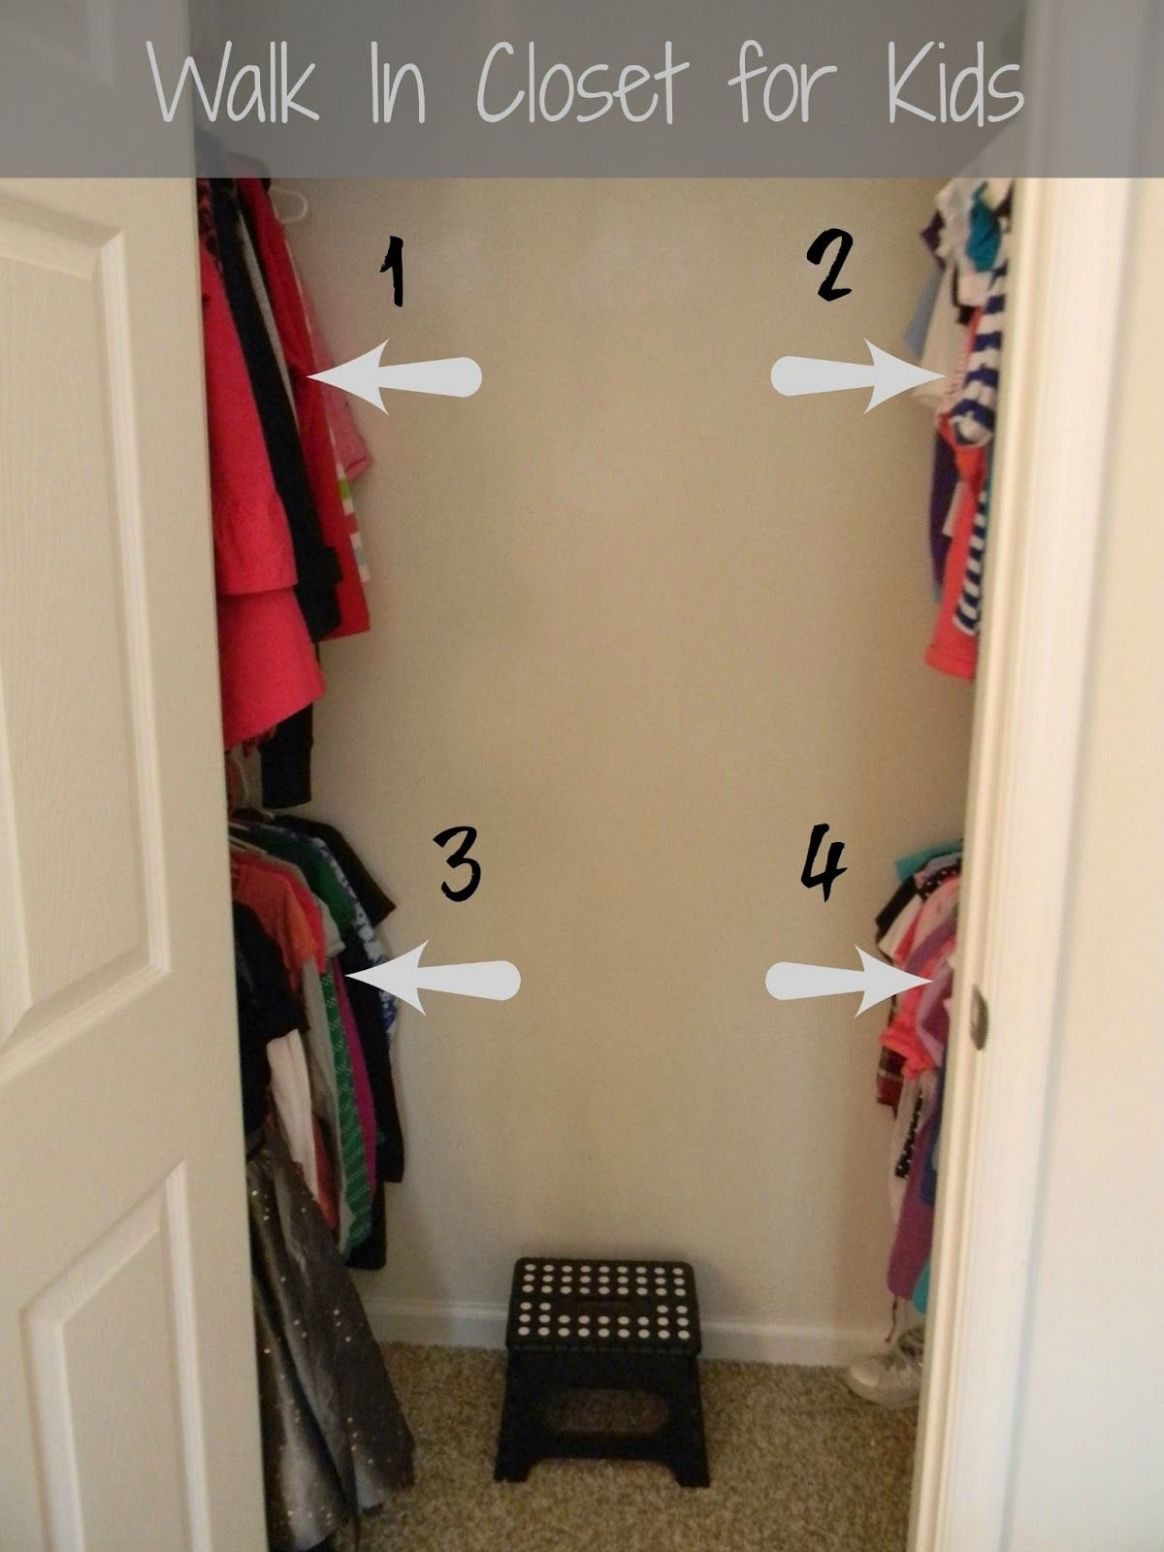 FINISHED*** Convert The Kid and Spare Room Closets Into Walk In ..